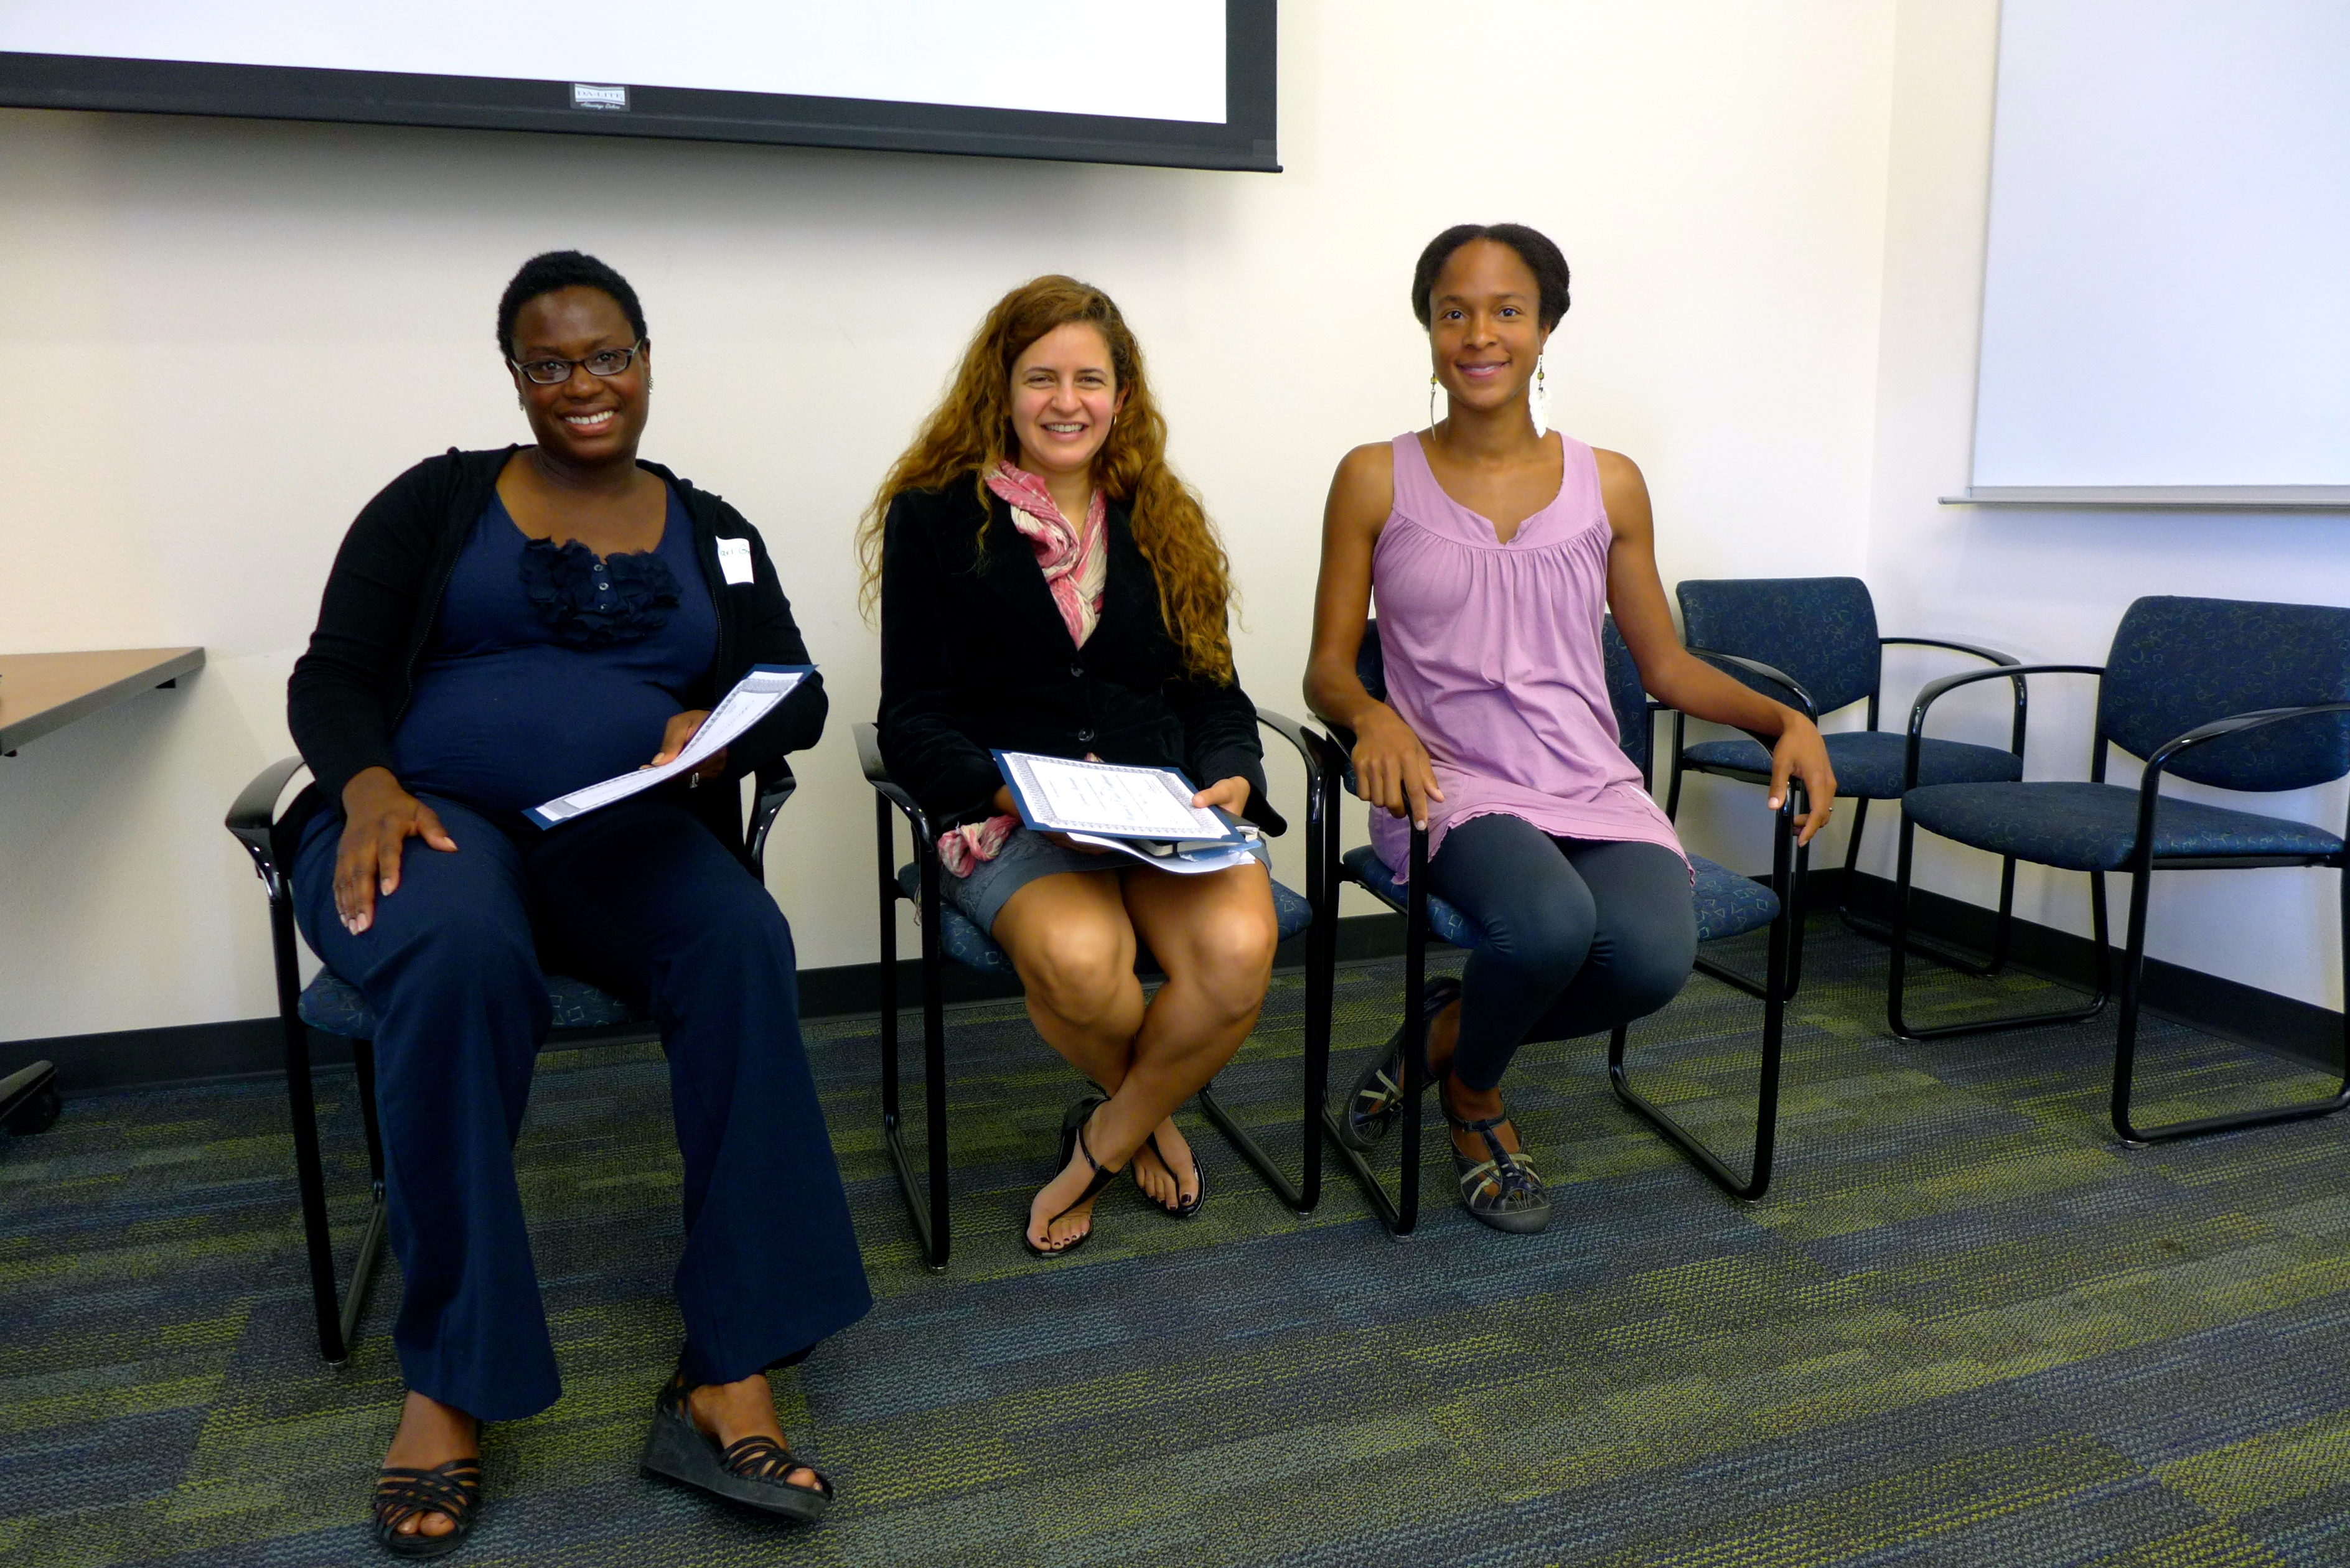 From Let to Right: Mariama Gray, Giovanna Montenegro, and A. Breeze Harper at the 1st Annual Women of Color Research Conference at UC Davis.